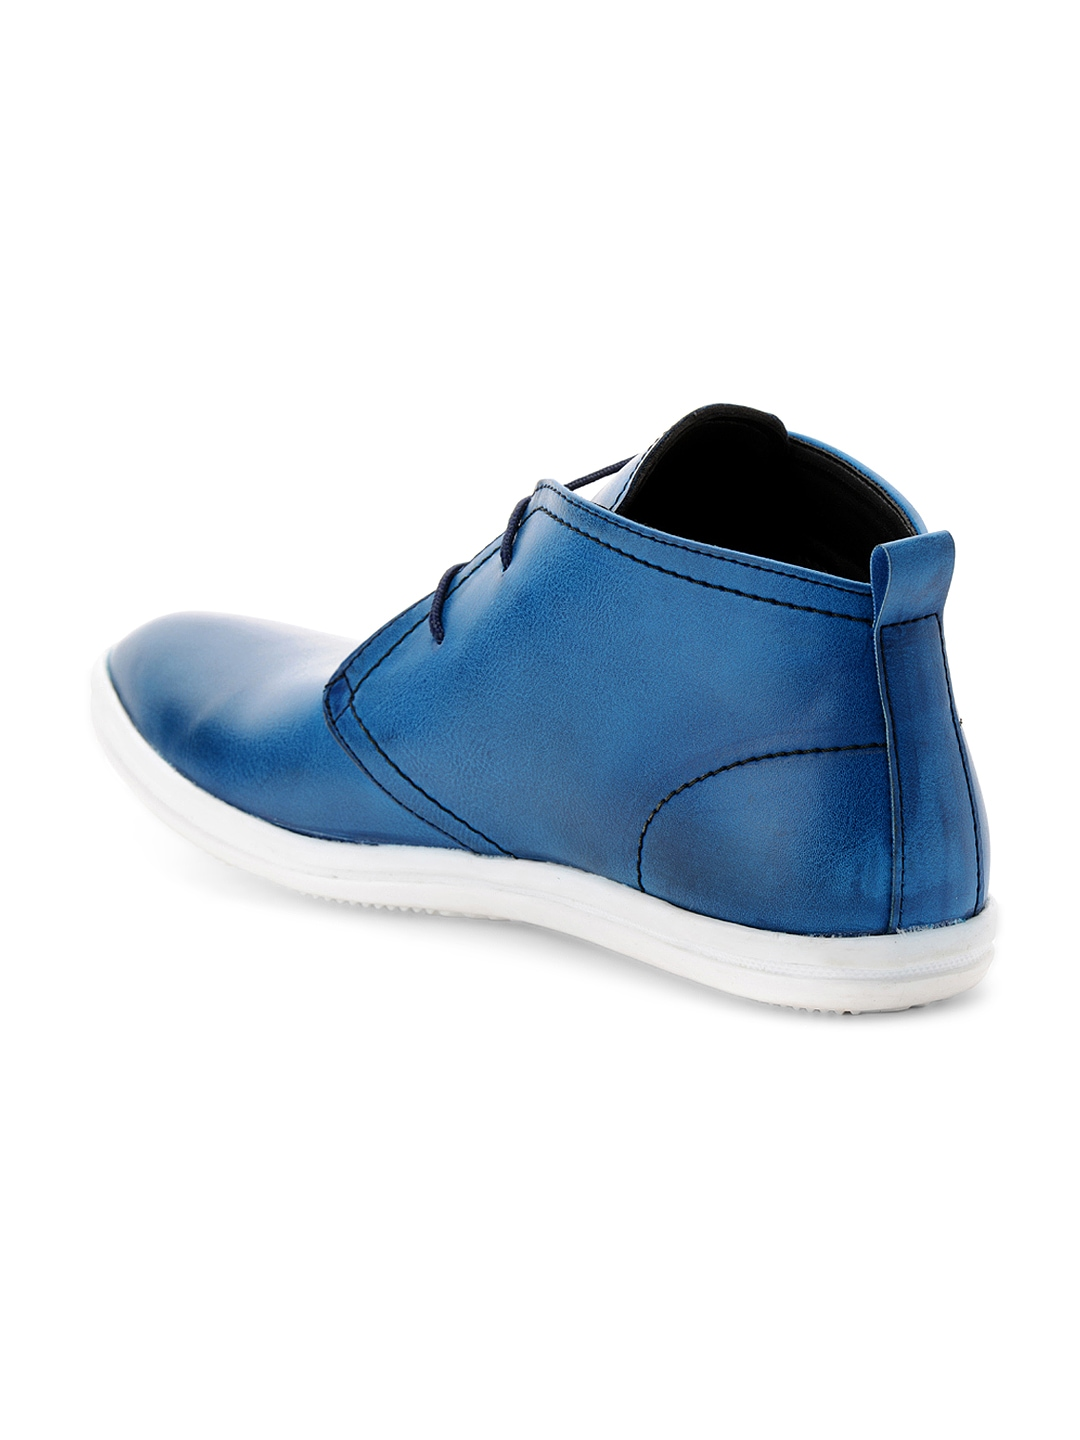 myntra bruno manetti blue casual shoes 880470 buy